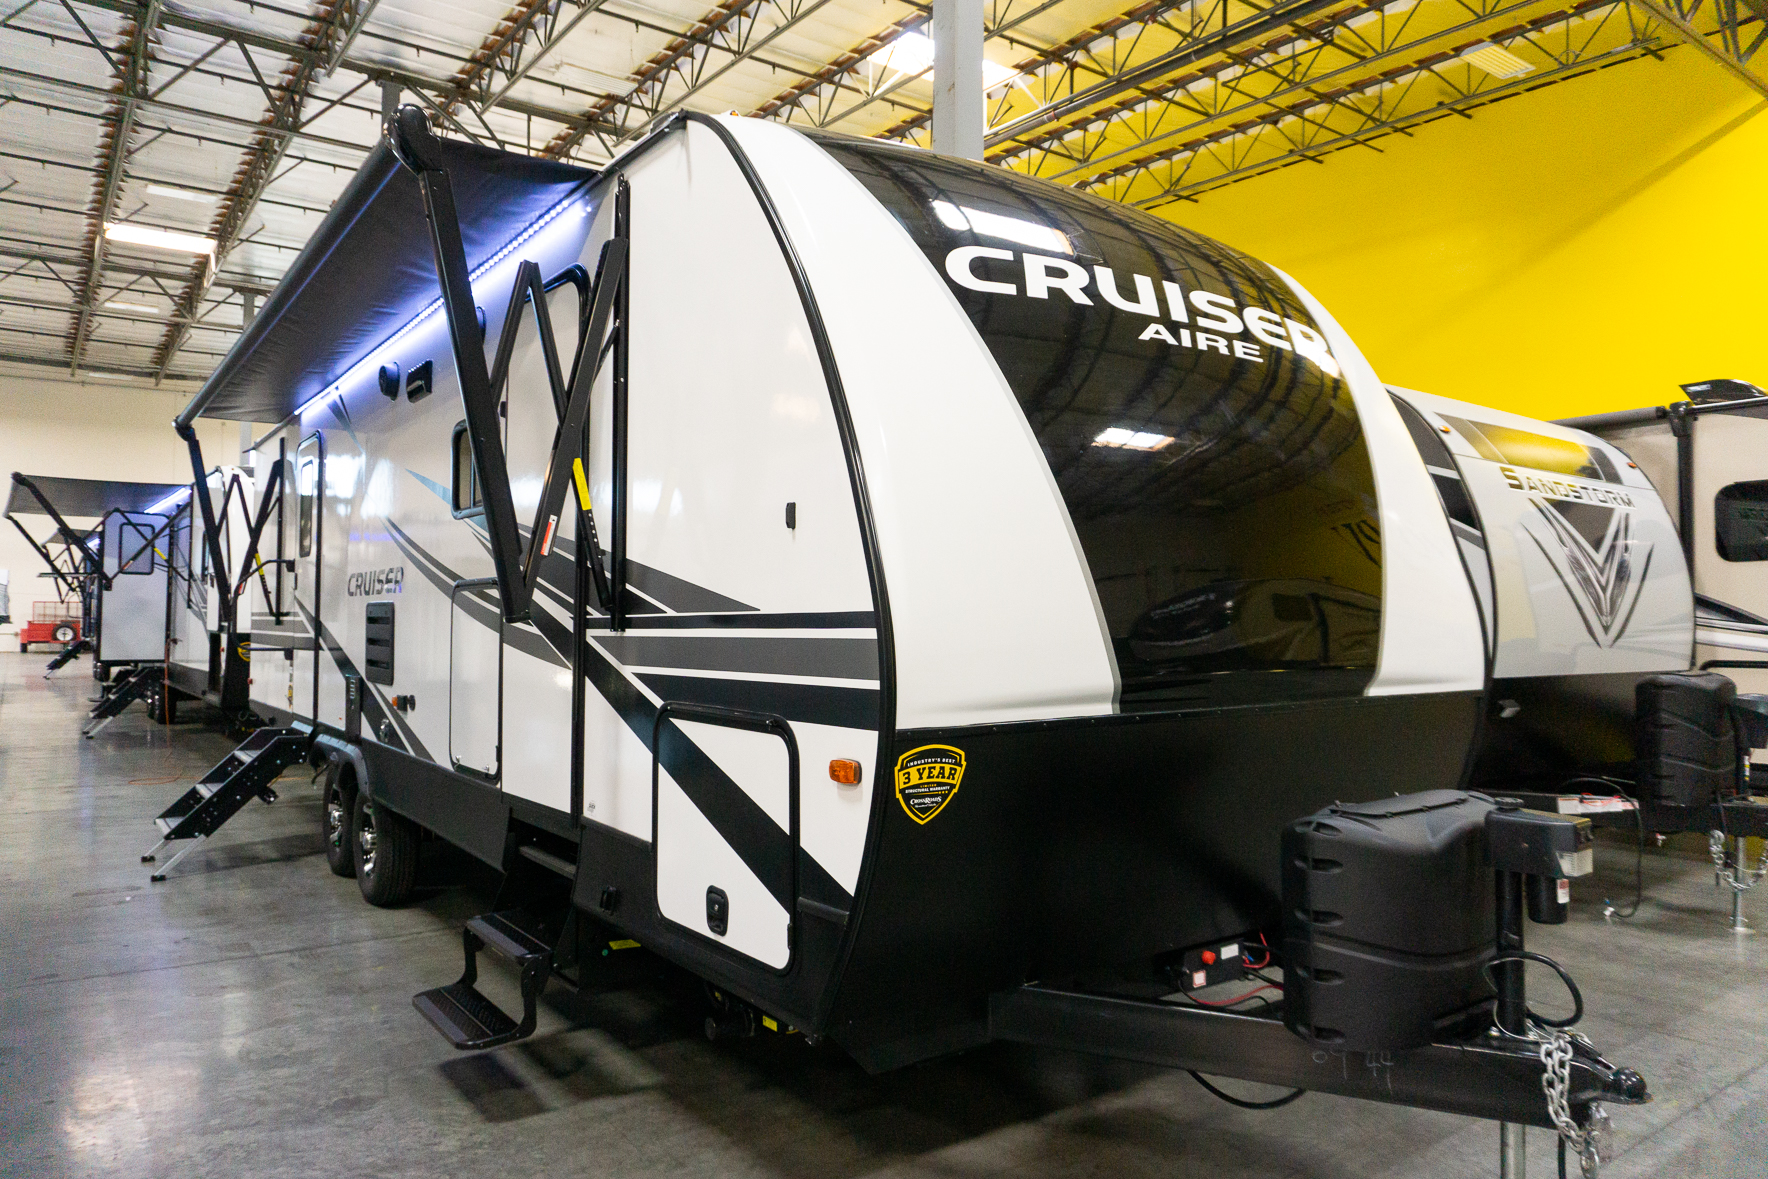 2021 CROSSROADS RV CRUISER AIRE 28BBH